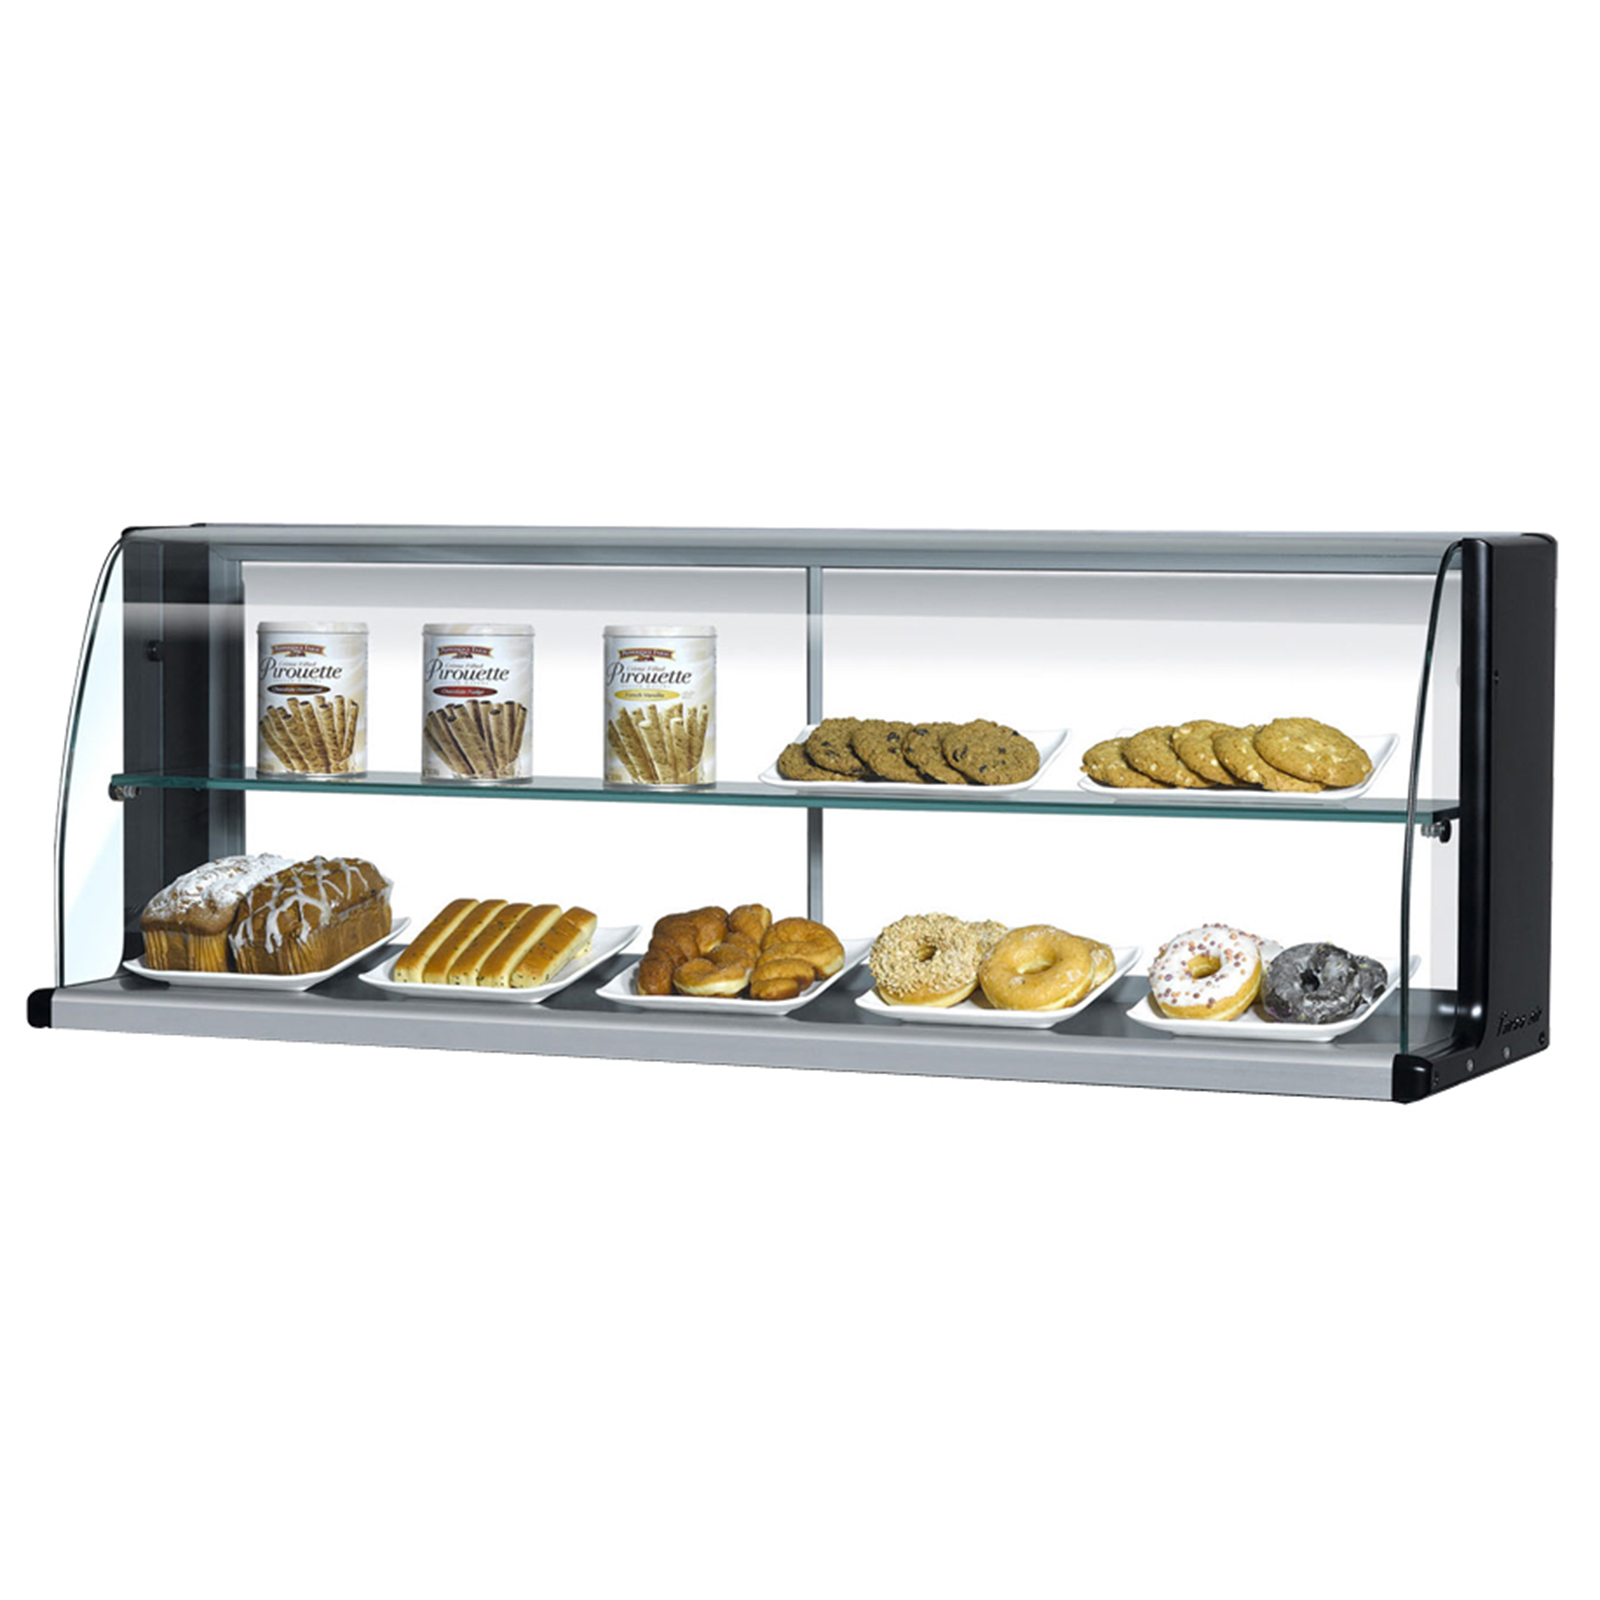 Turbo Air TOMD-40HB display case, non-refrigerated countertop